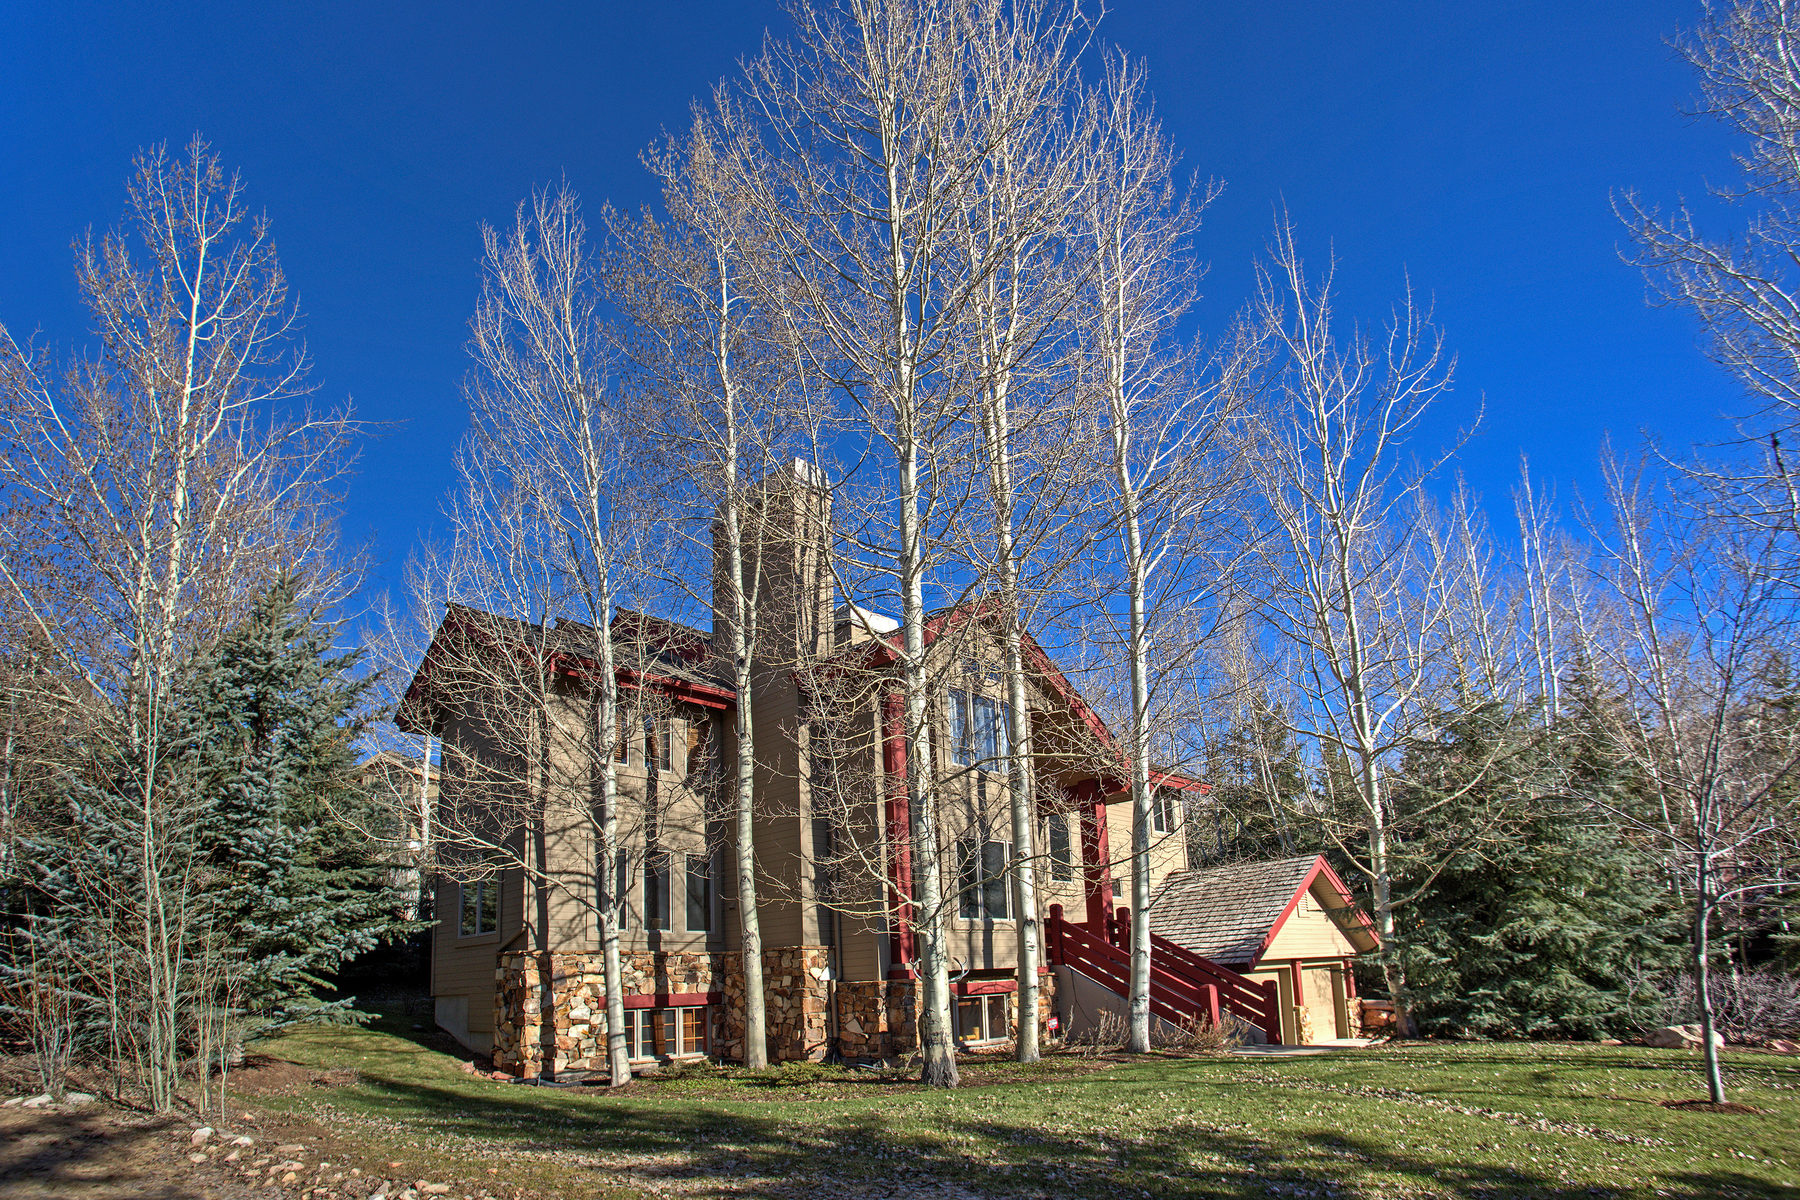 Single Family Home for Sale at Beautiful Deer Valley Residence 3055 Snowcloud Cir Park City, Utah, 84060 United States